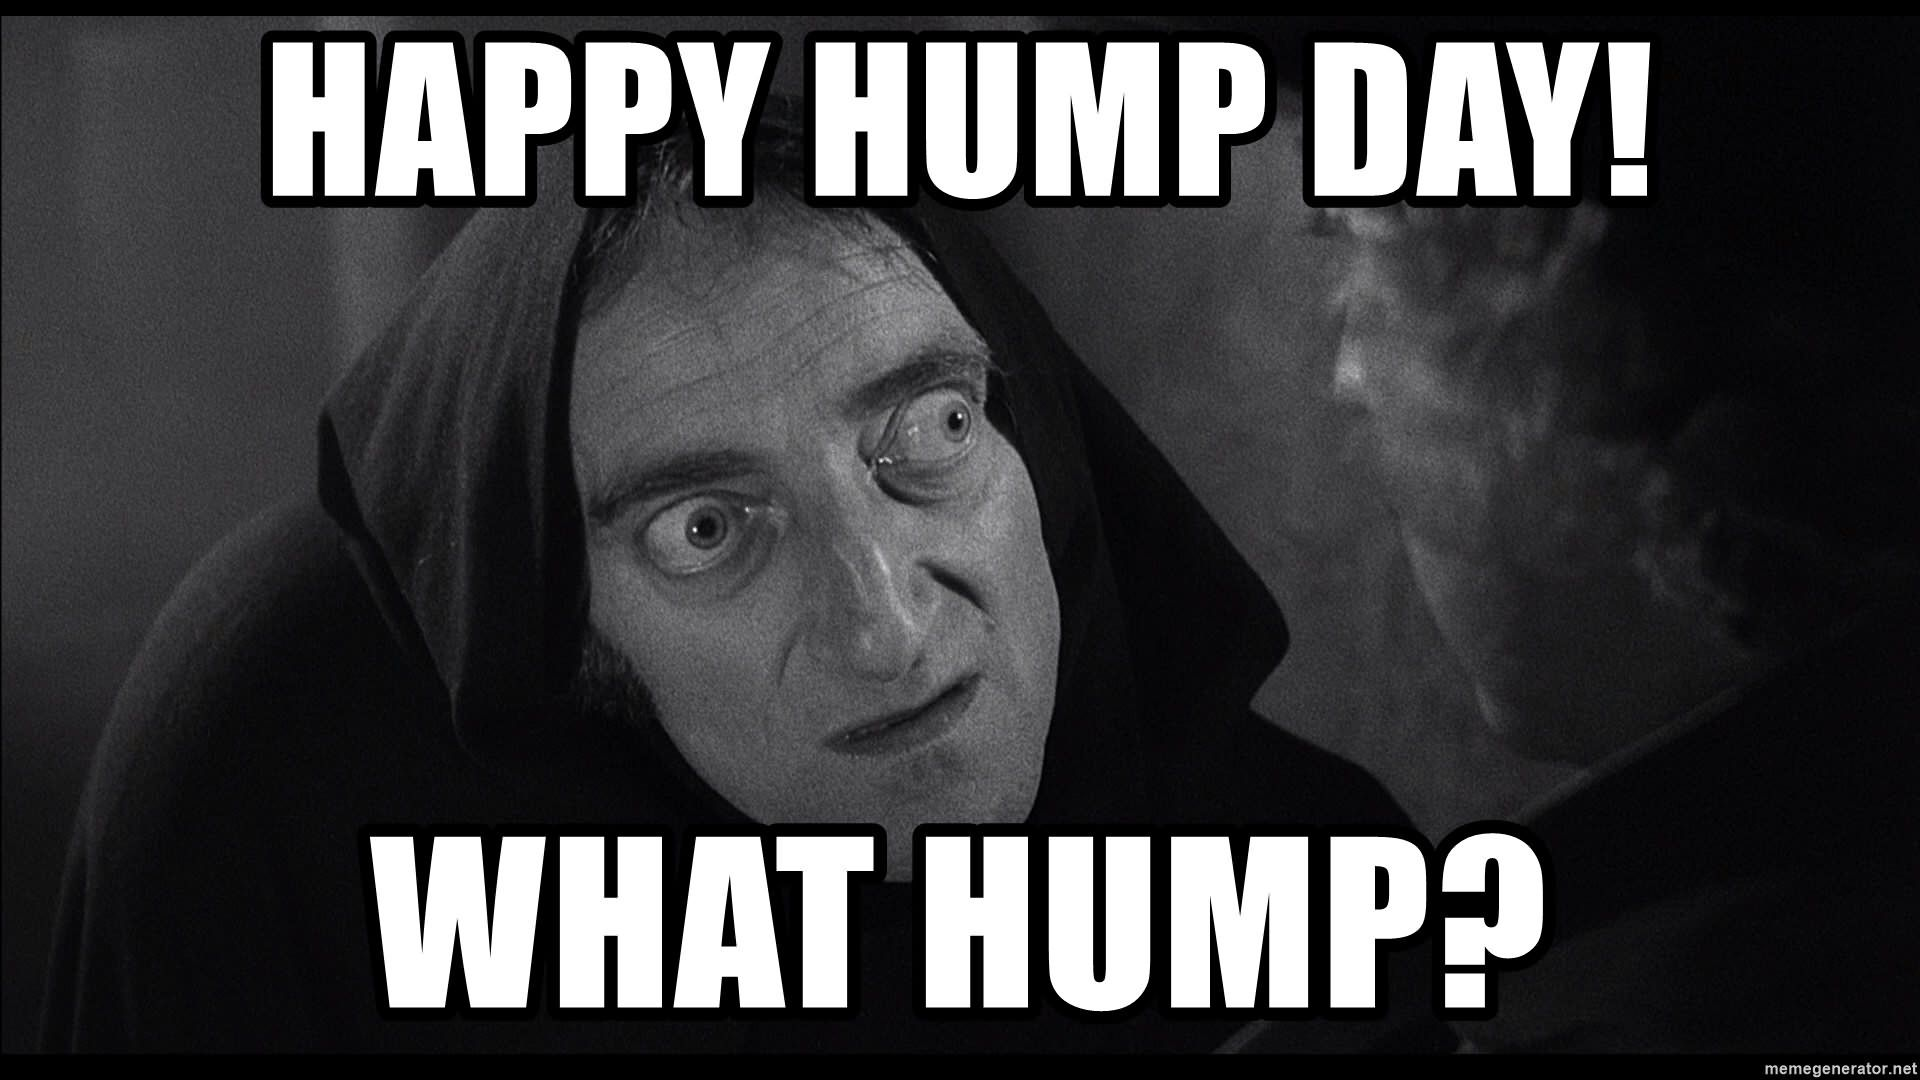 28 Funniest Happy Hump Day Memes That Makes You Fun Happy Hump Day Meme Hump Day Humor Funny Happy